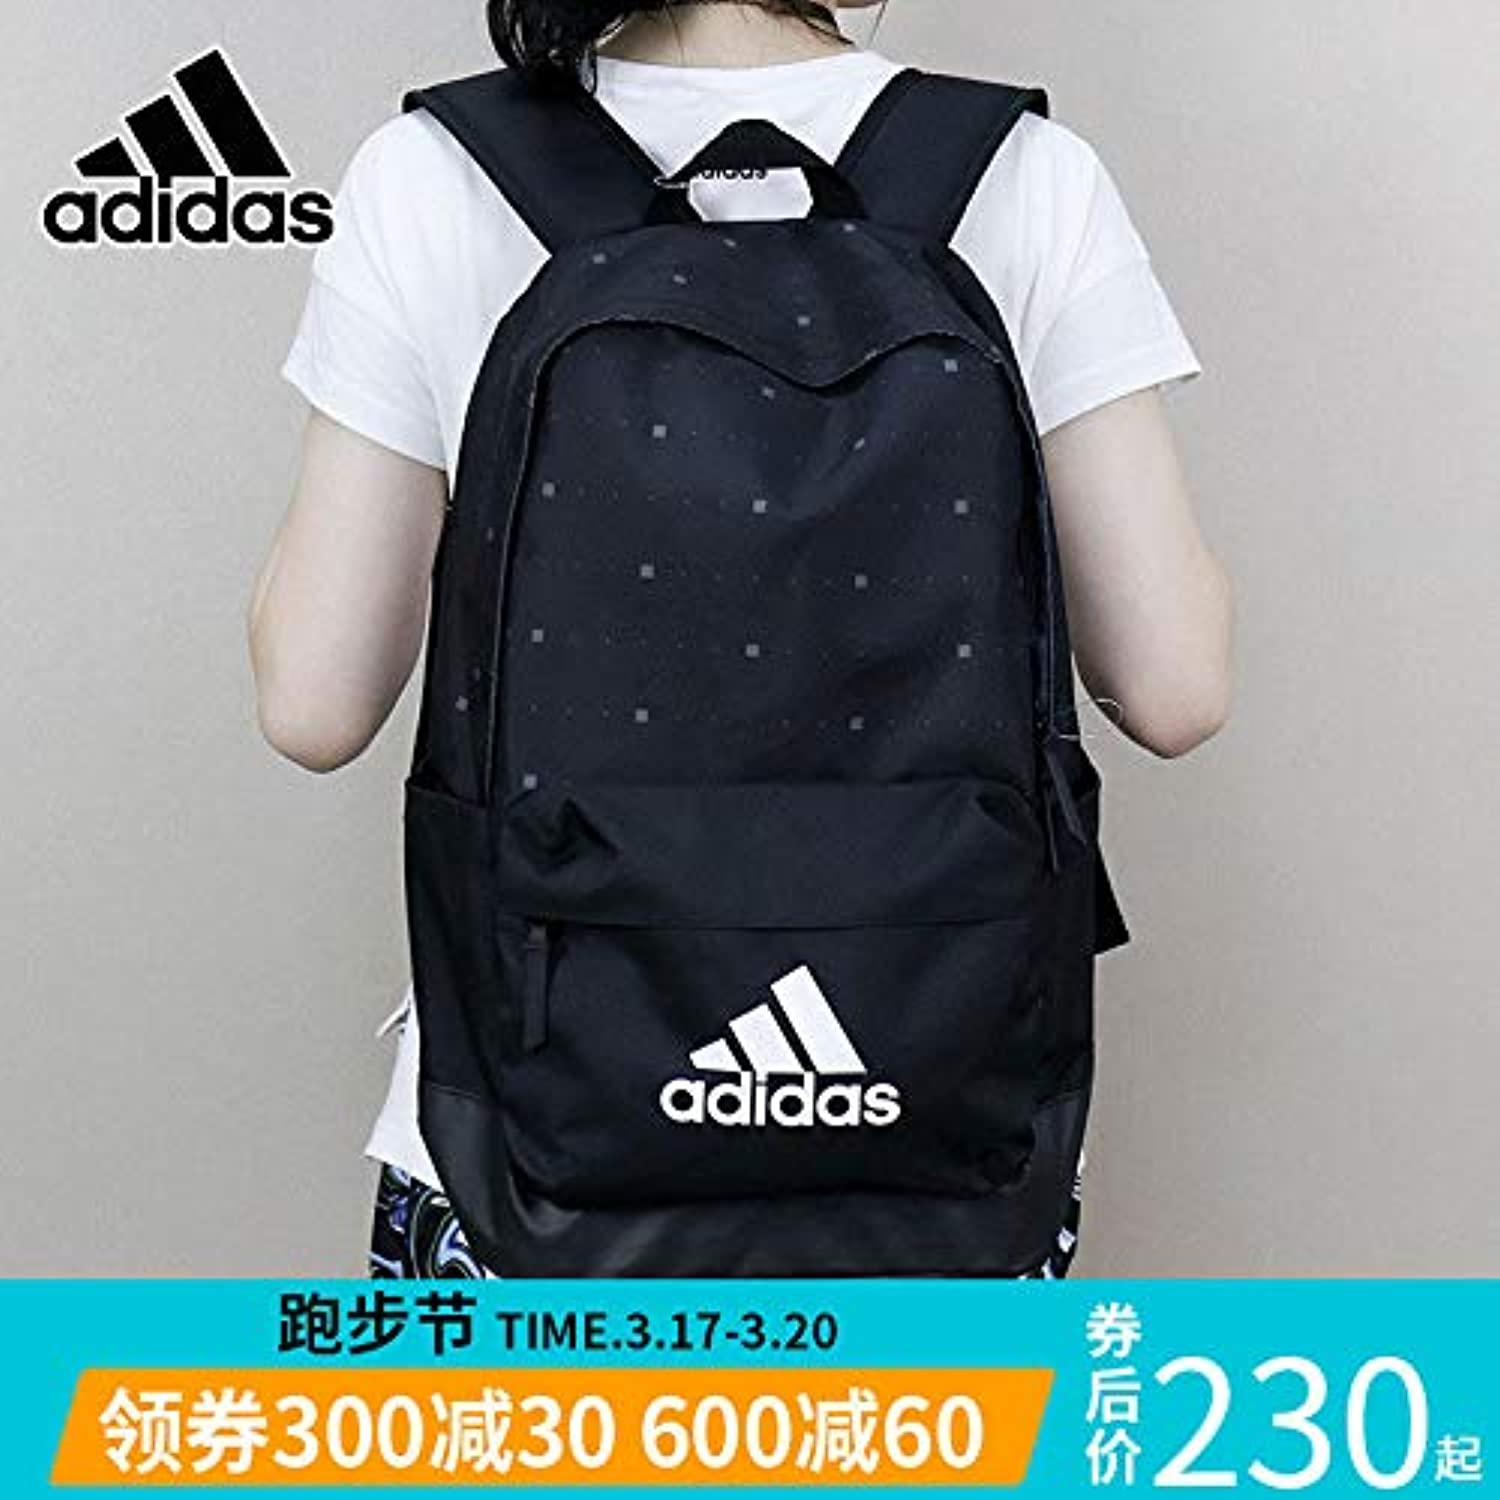 Adidas Adidas Backpack Men's Bags Women's Bag 2019 New Bag Outdoor Travel Sports Backpack DM2905